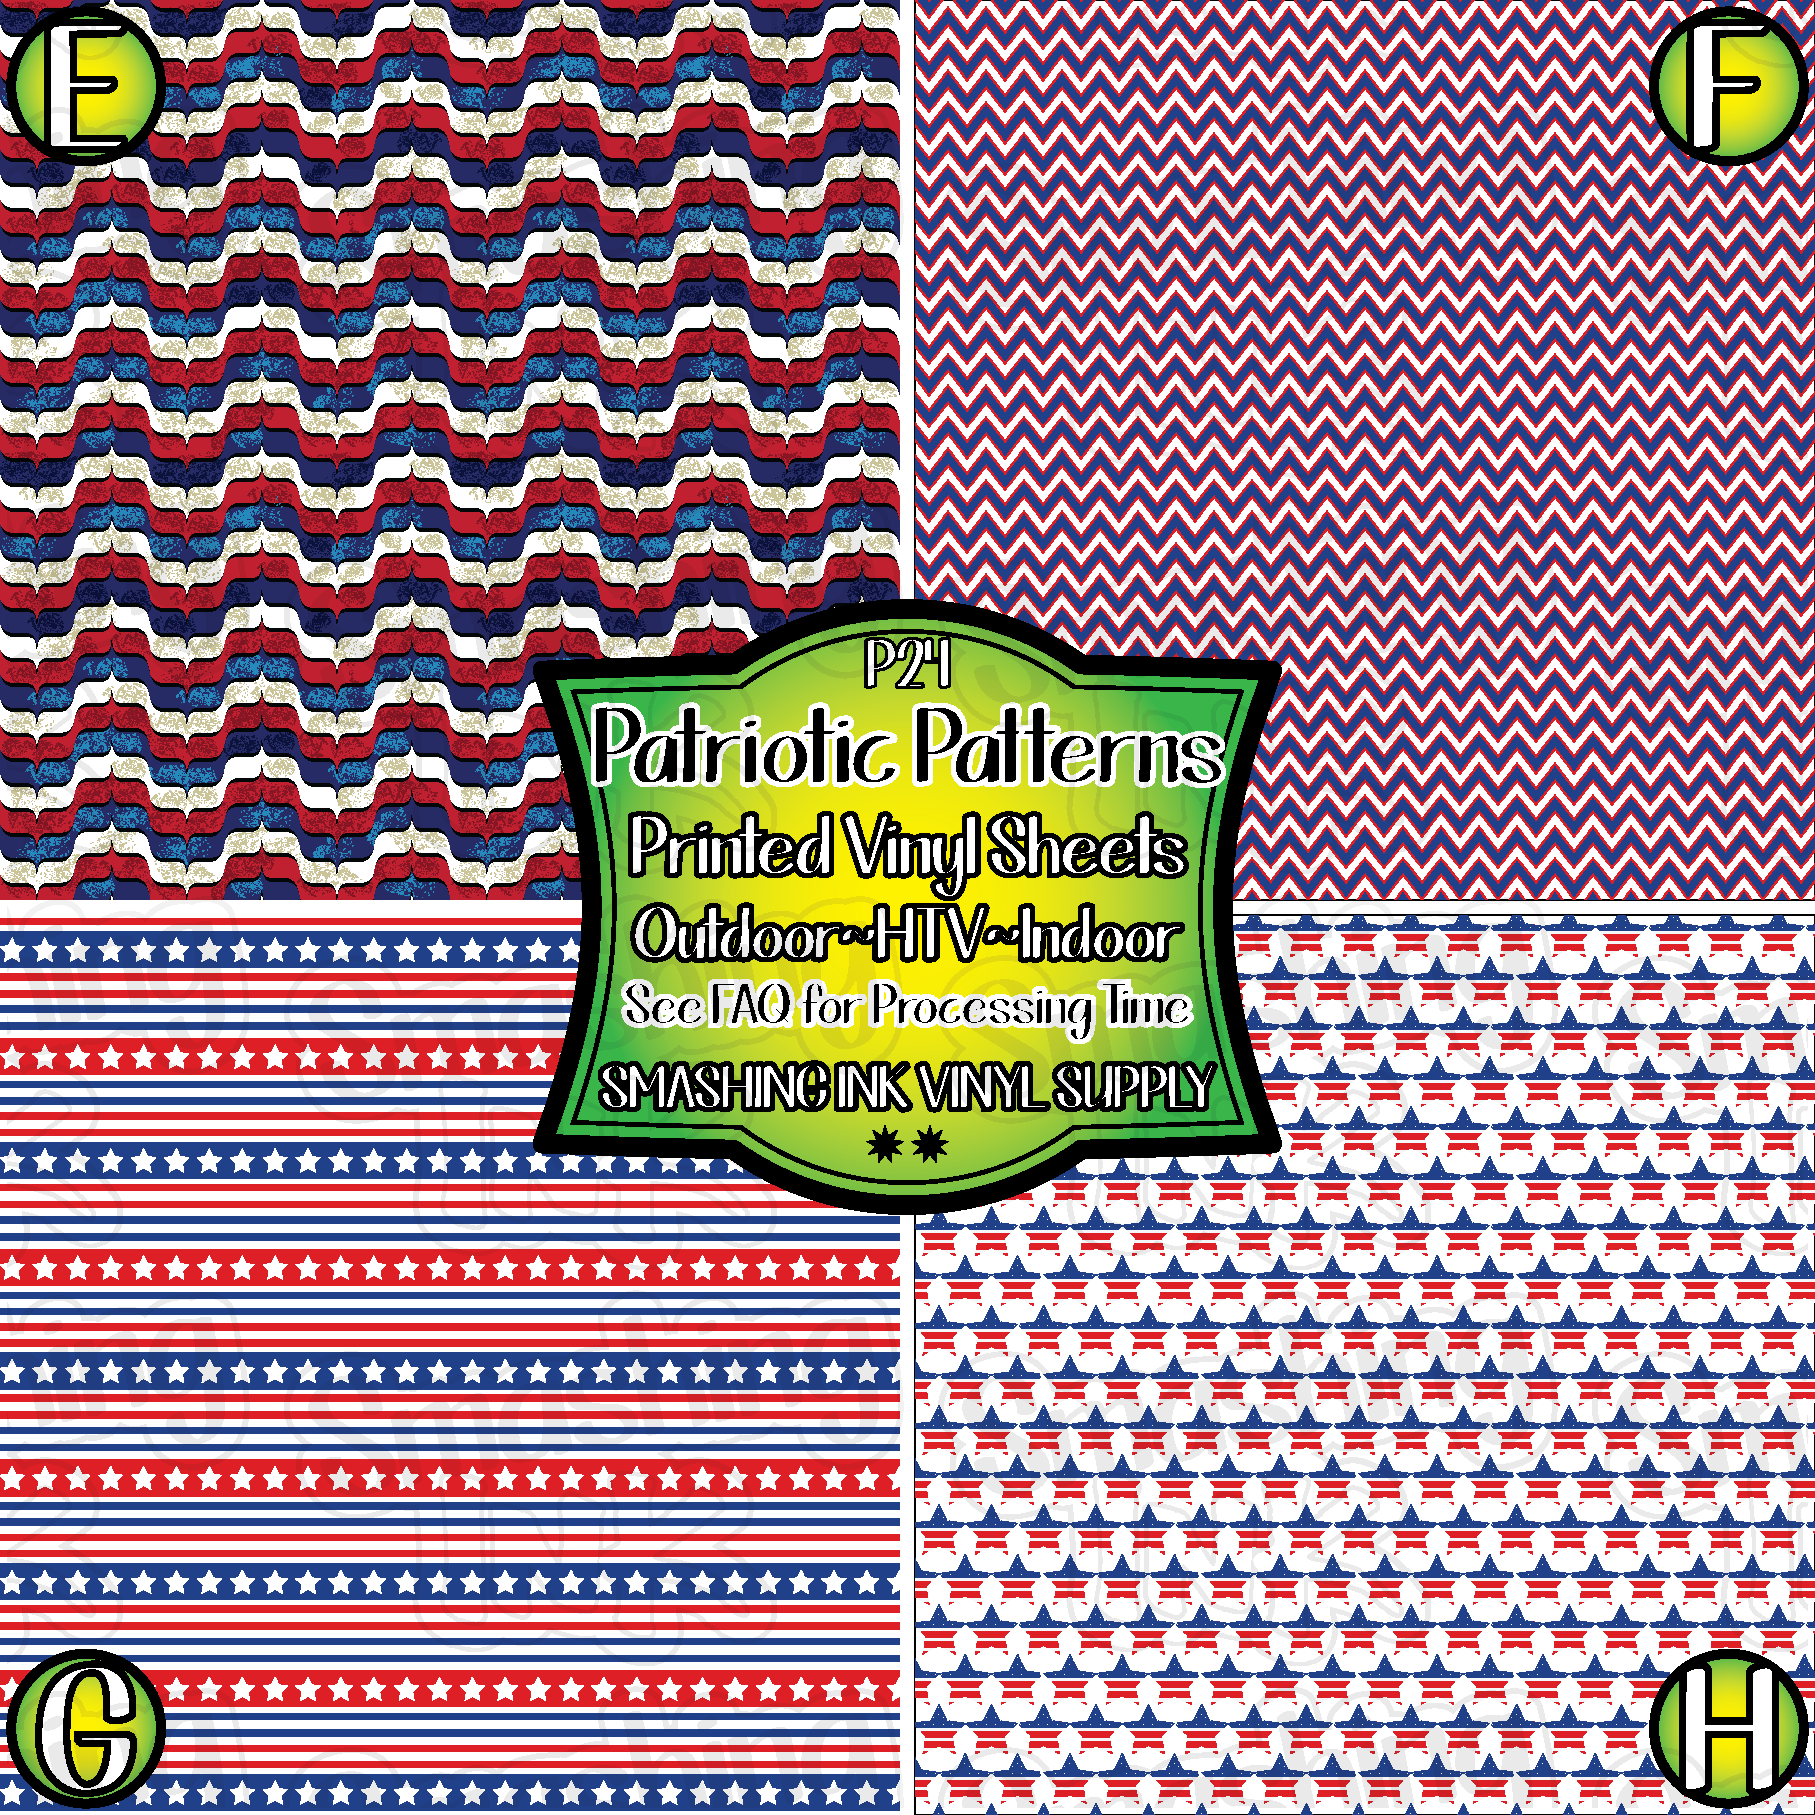 Small Scale Patriotic Patterns - Pattern Vinyl (READY IN 3 BUS DAYS)